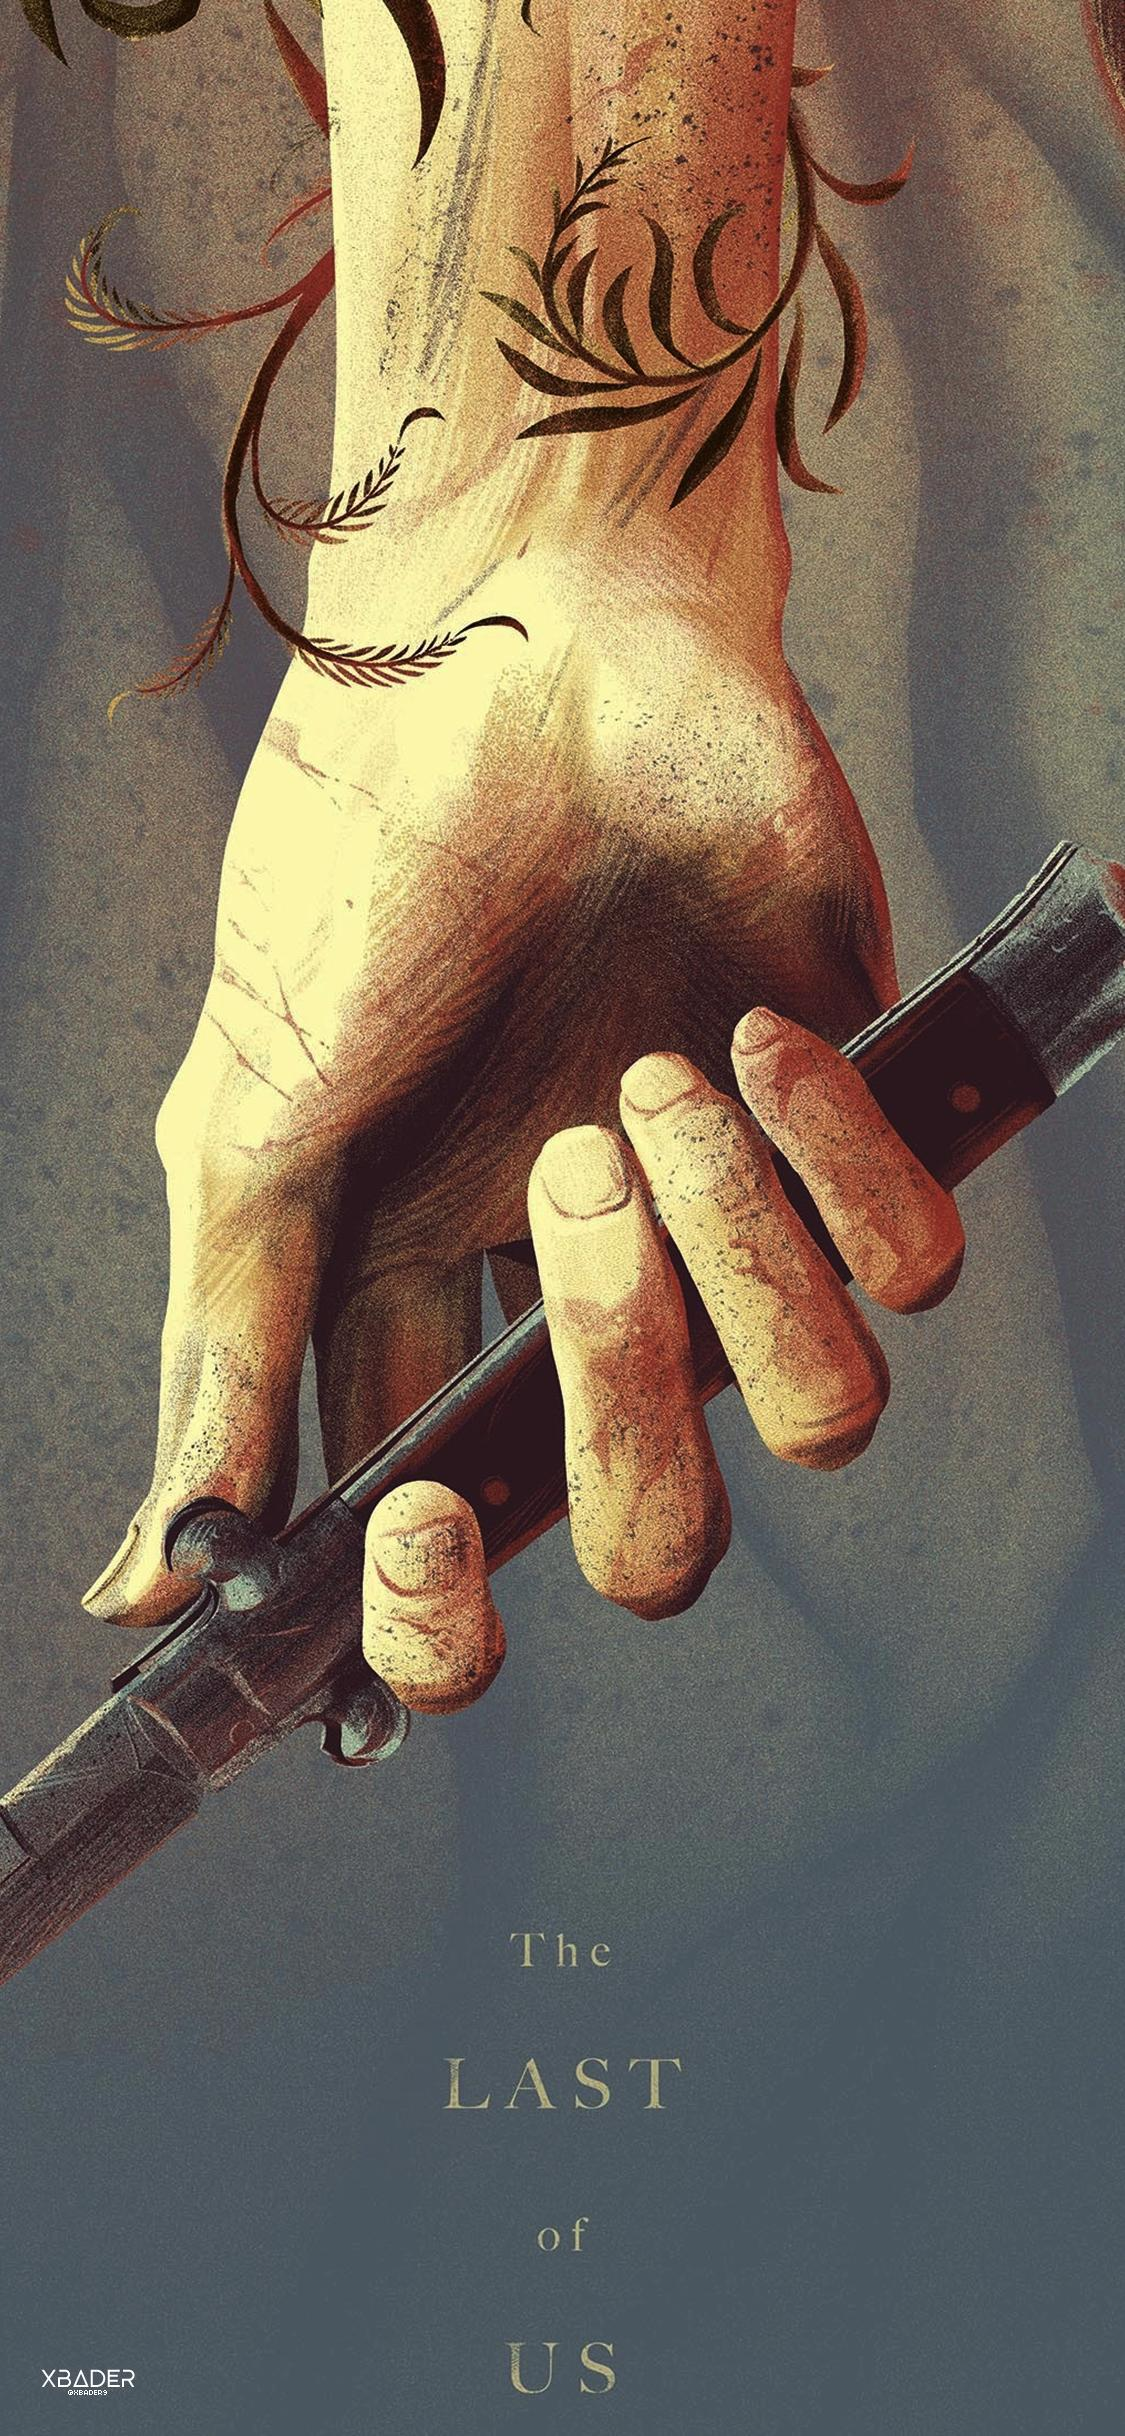 The Last of Us Part 2 iPhone Wallpapers   Top The Last of Us 1125x2436